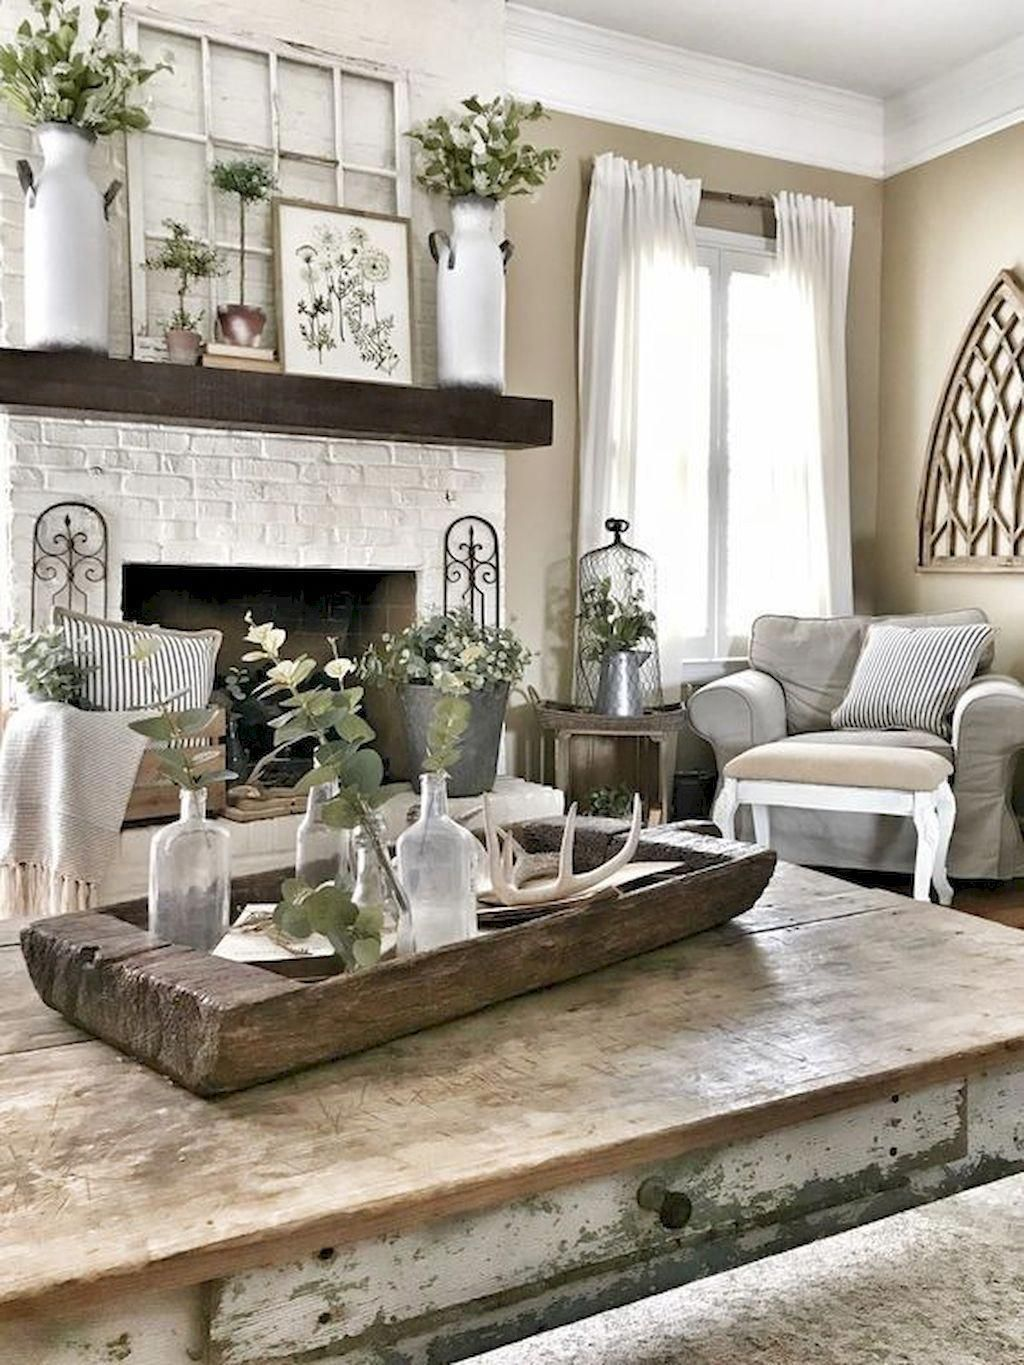 French Country Farmhouse Decorating Ideas from i.pinimg.com